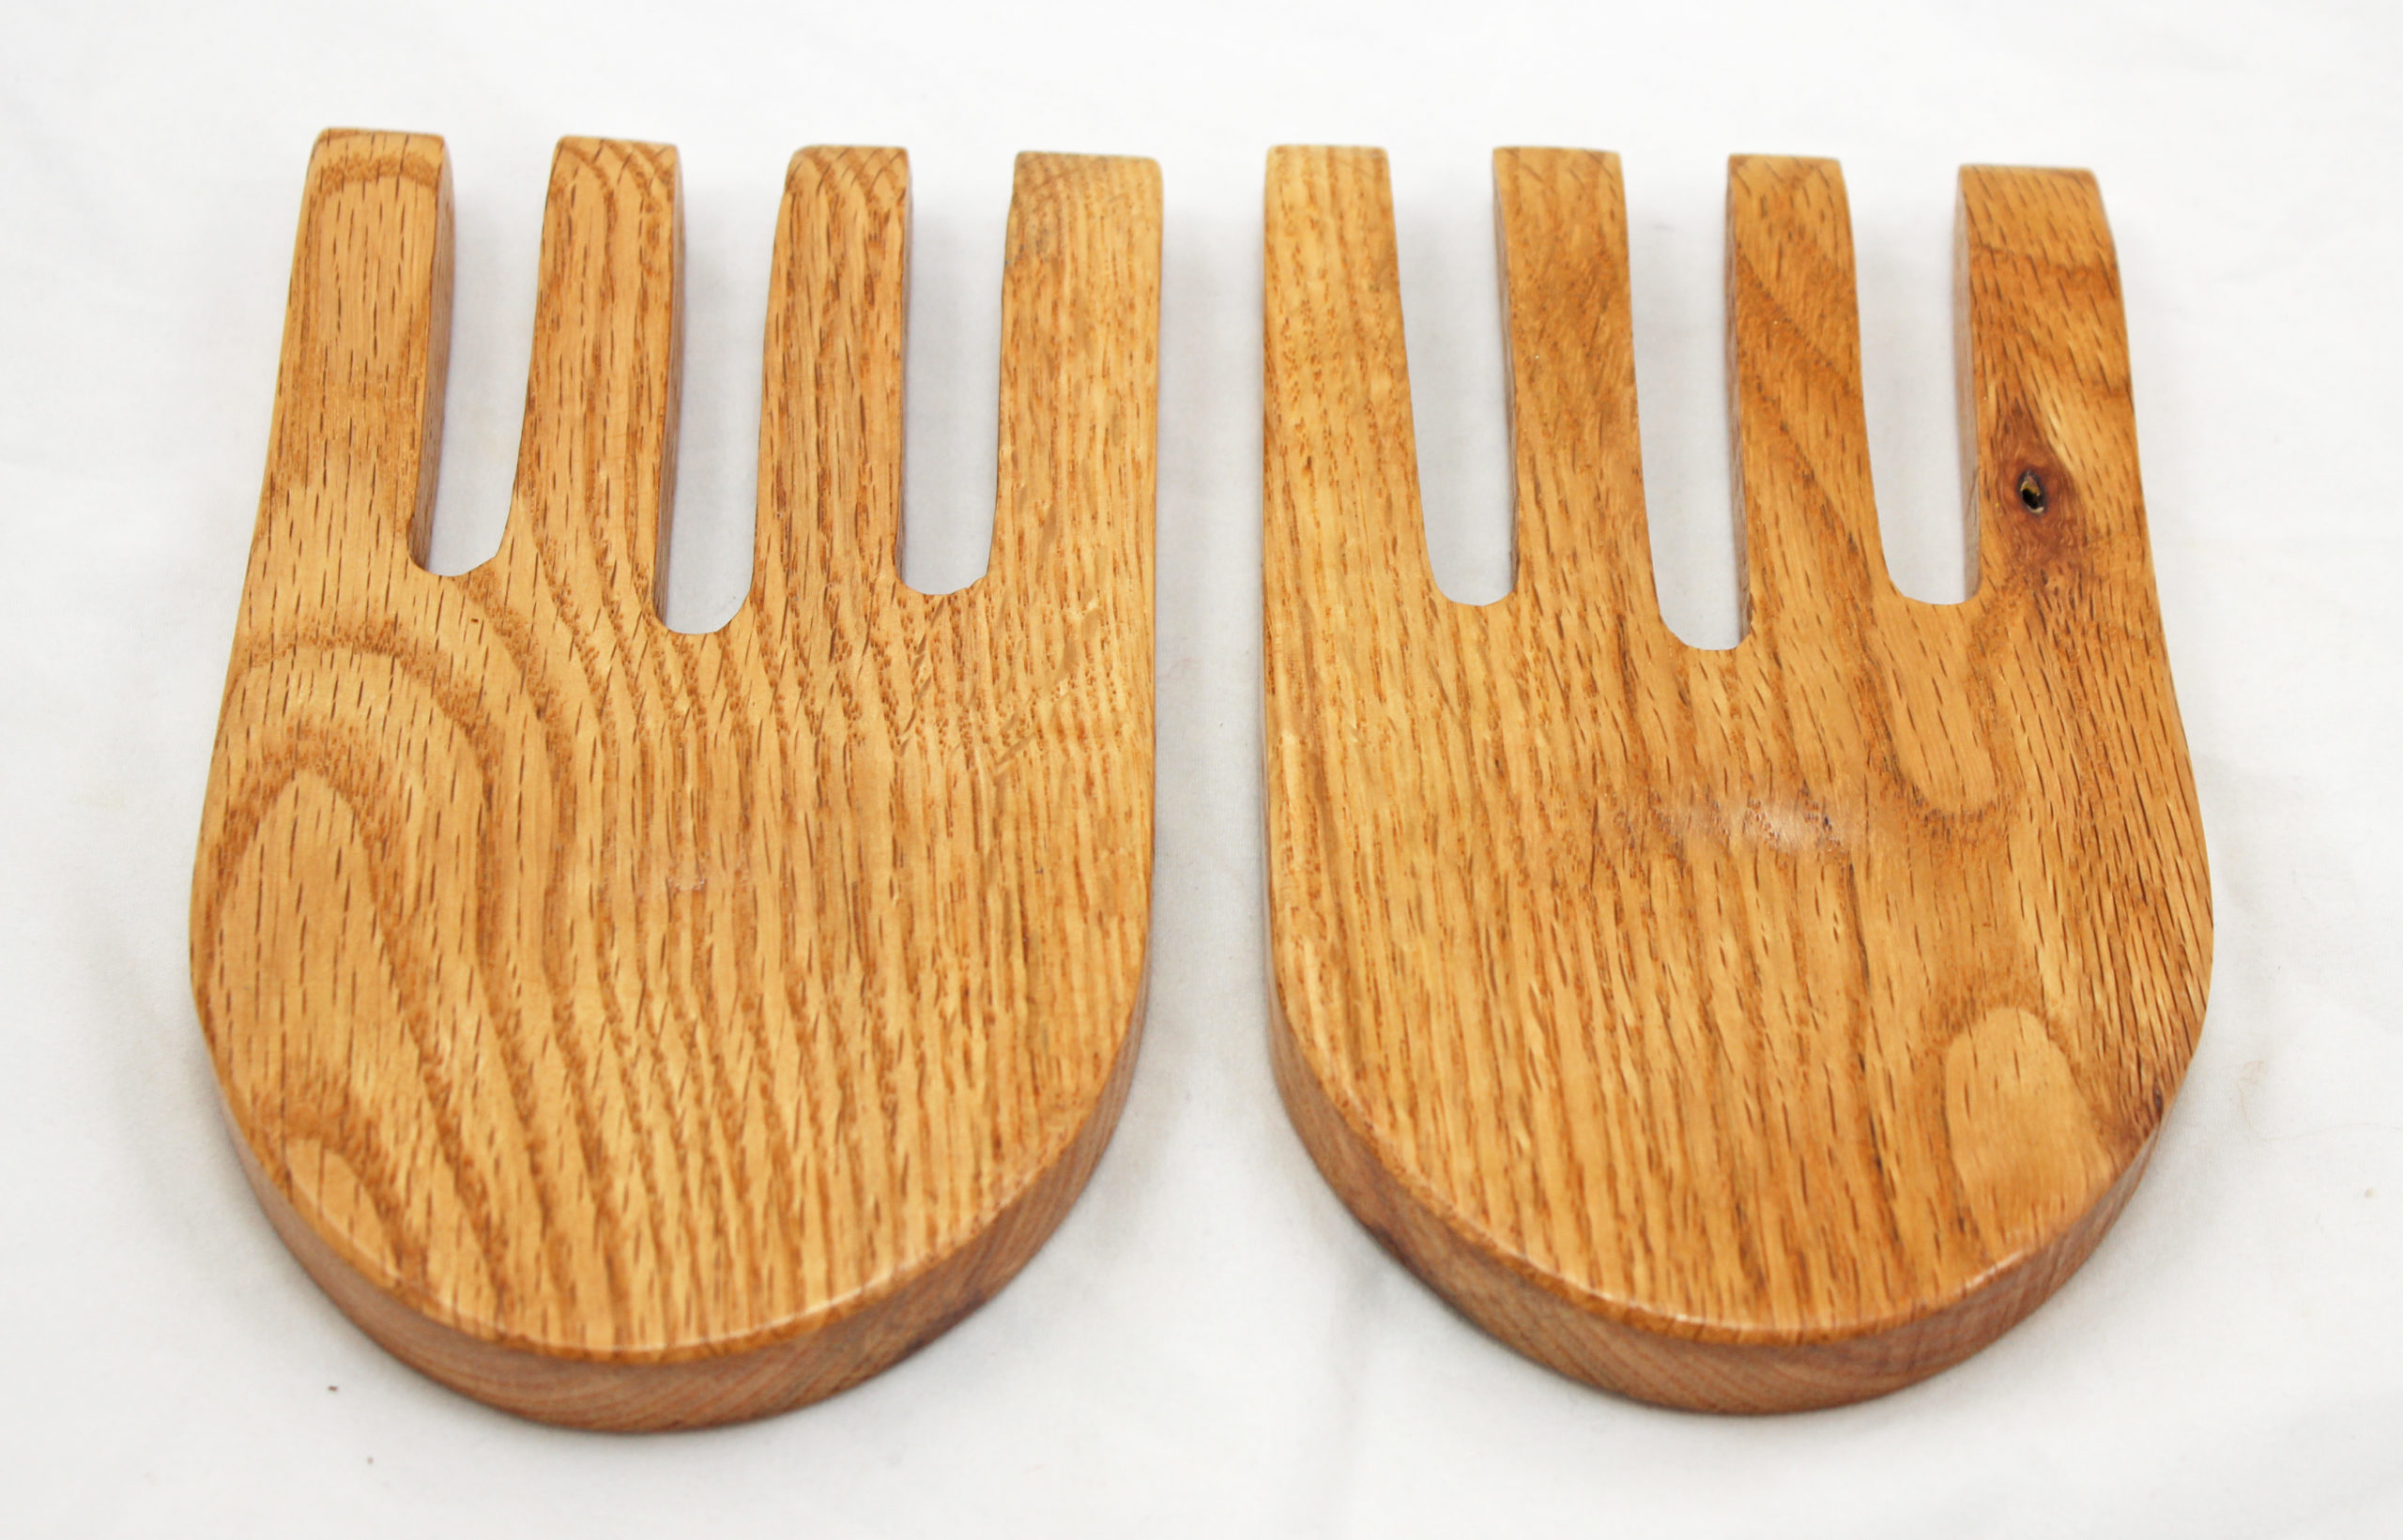 Bear Claw Salad Servers